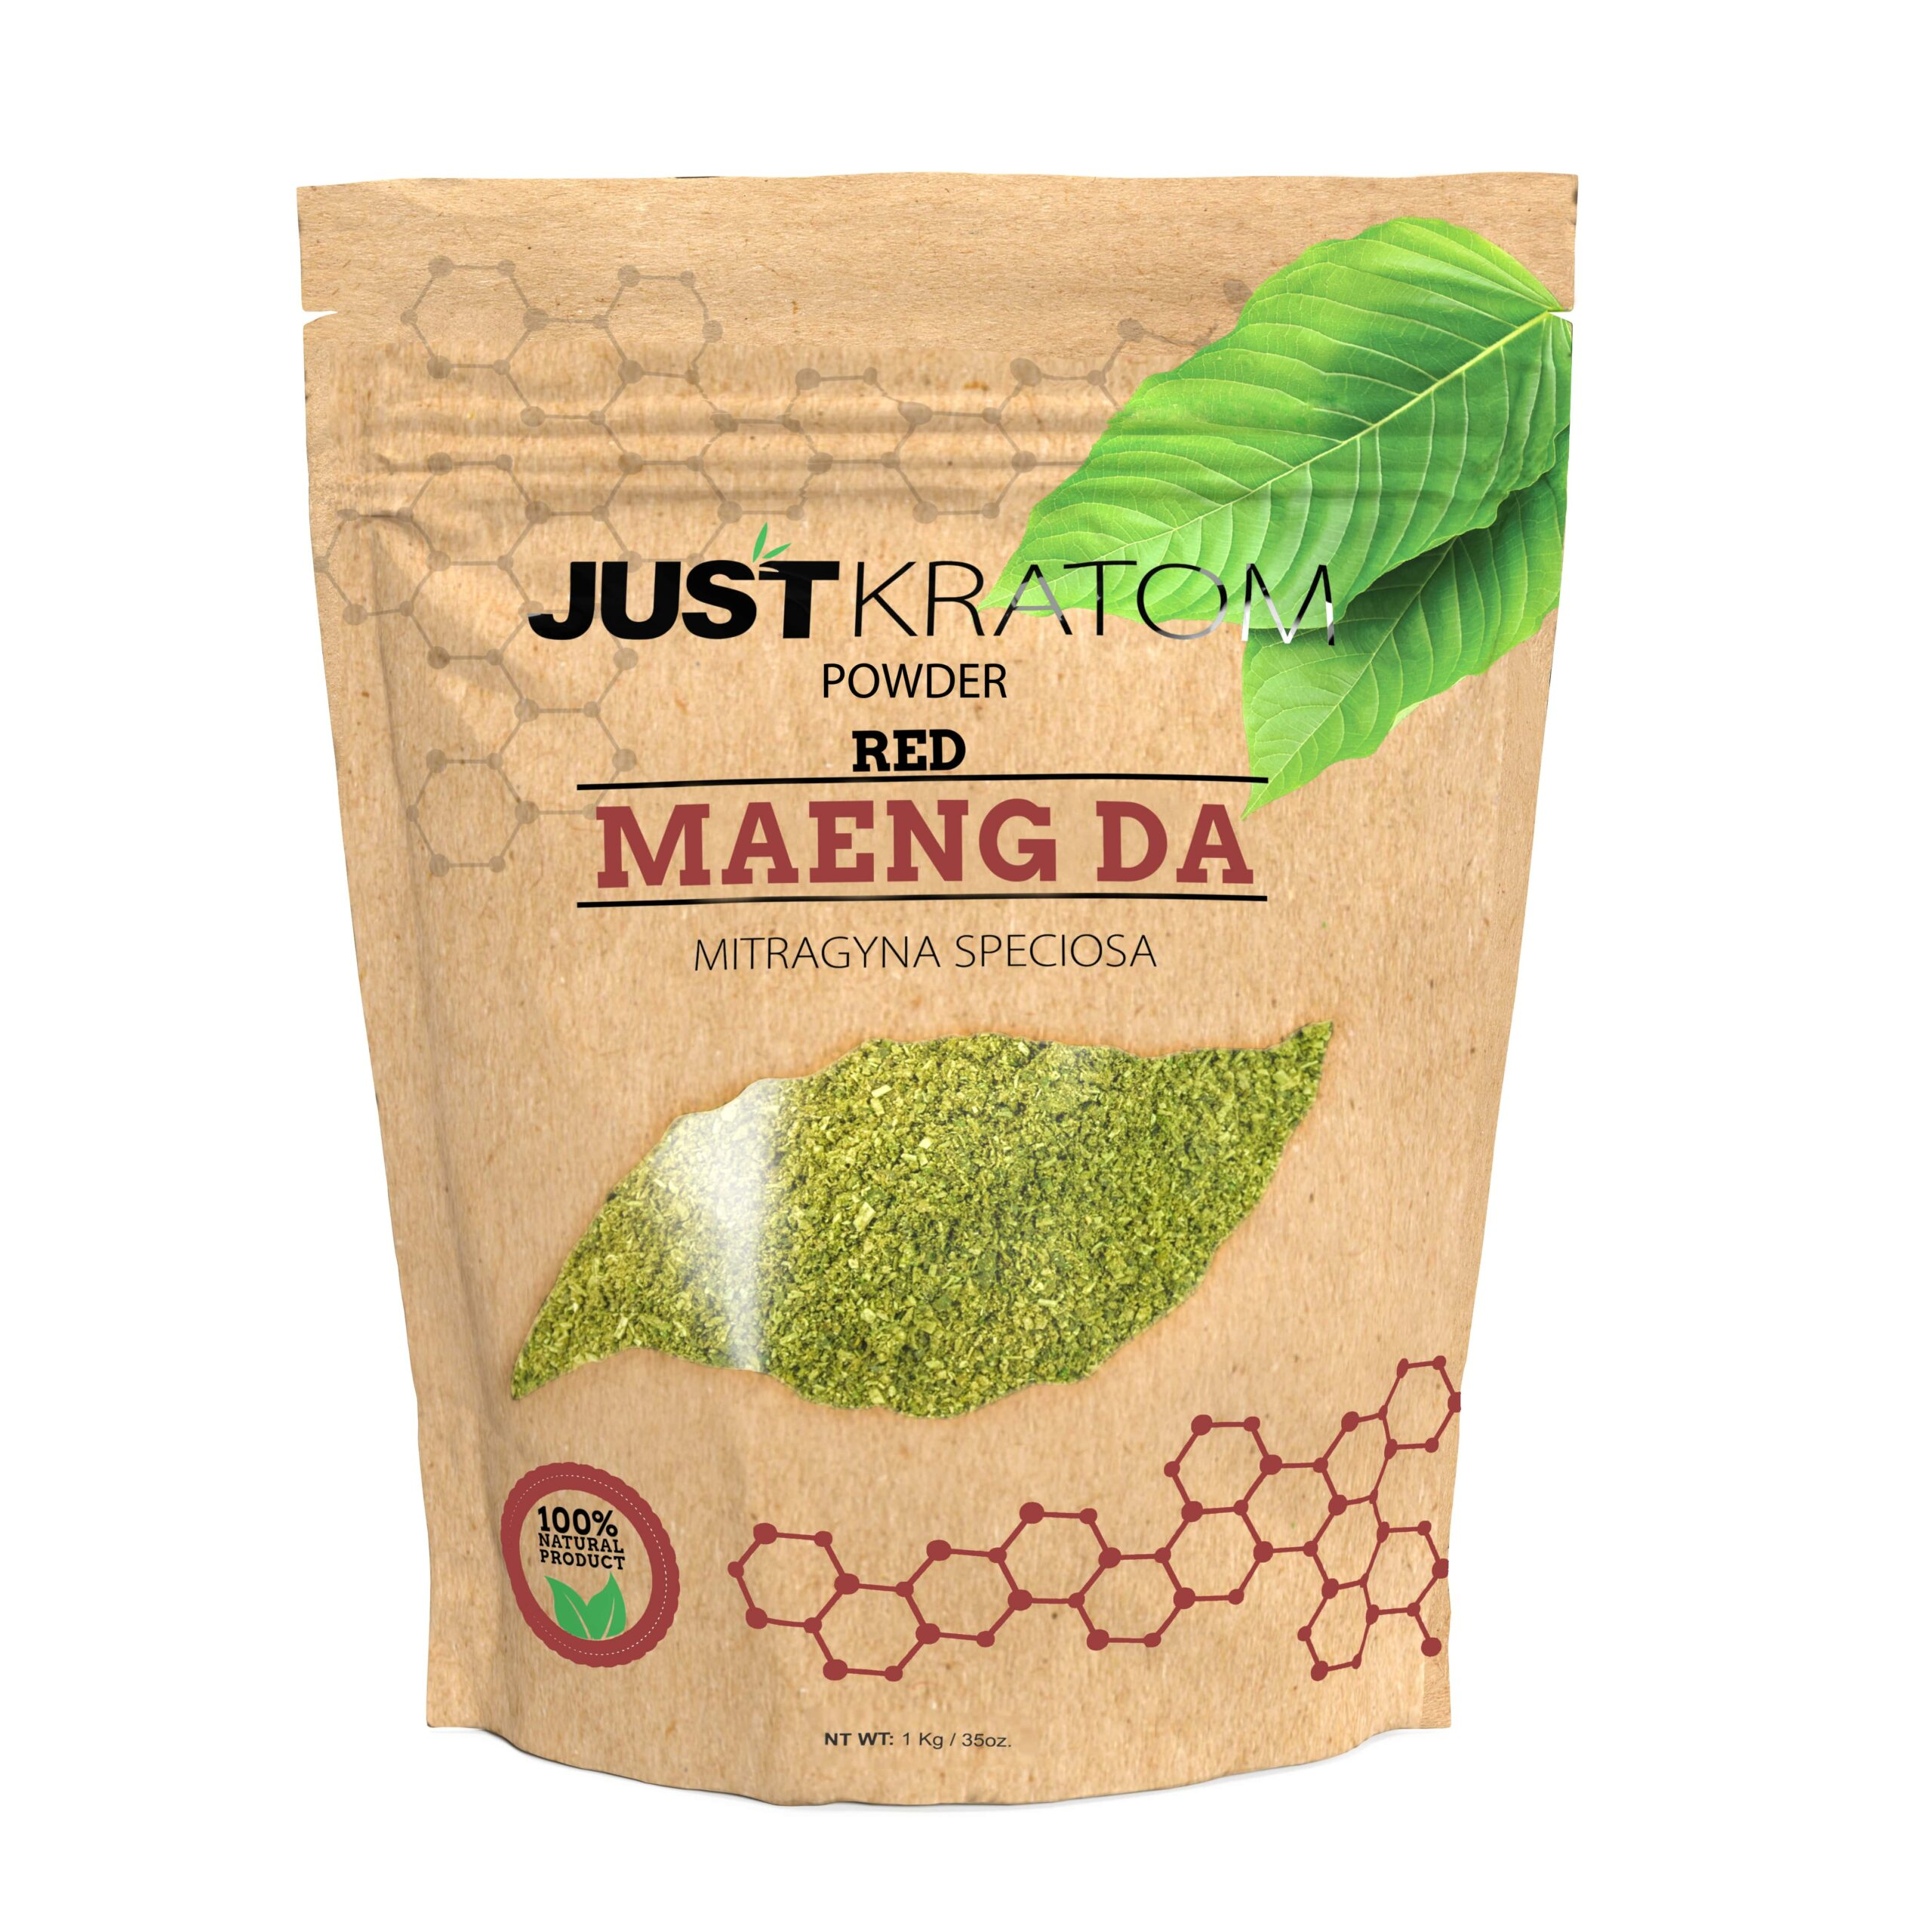 Where To Buy Uei Kratom